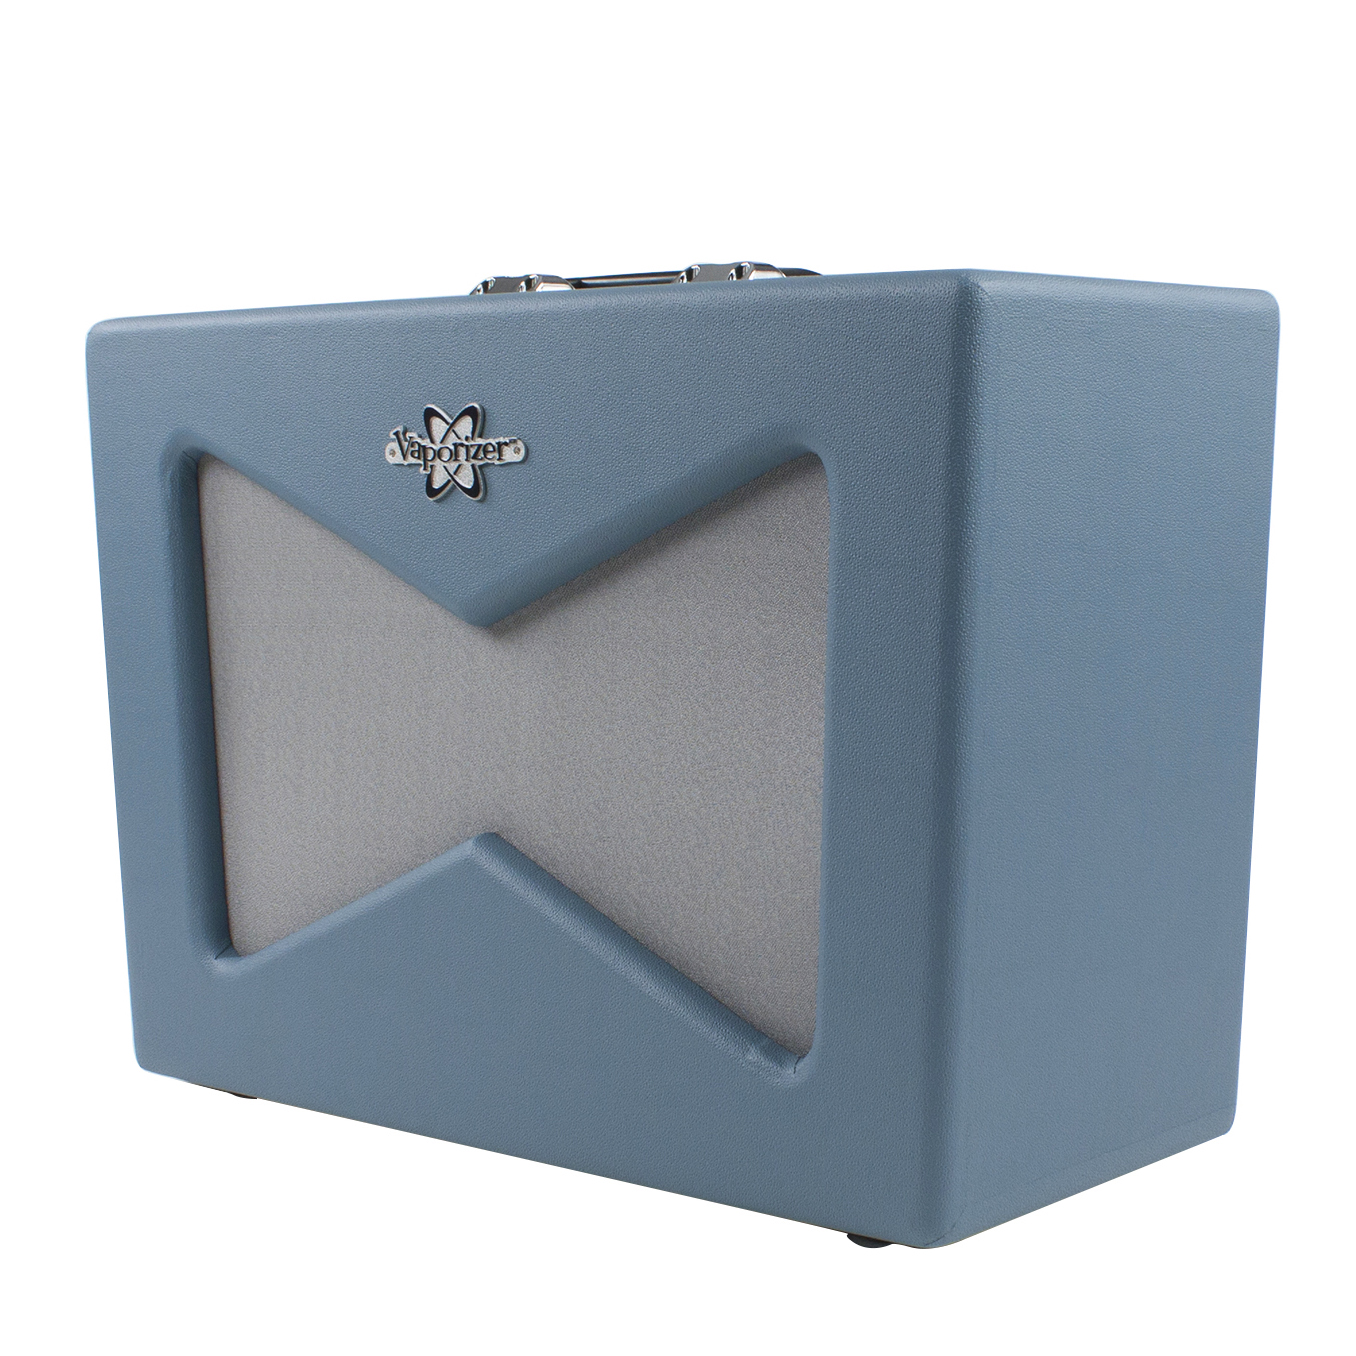 fender vaporizer slate blue 12 w r hren gitarrencombo. Black Bedroom Furniture Sets. Home Design Ideas